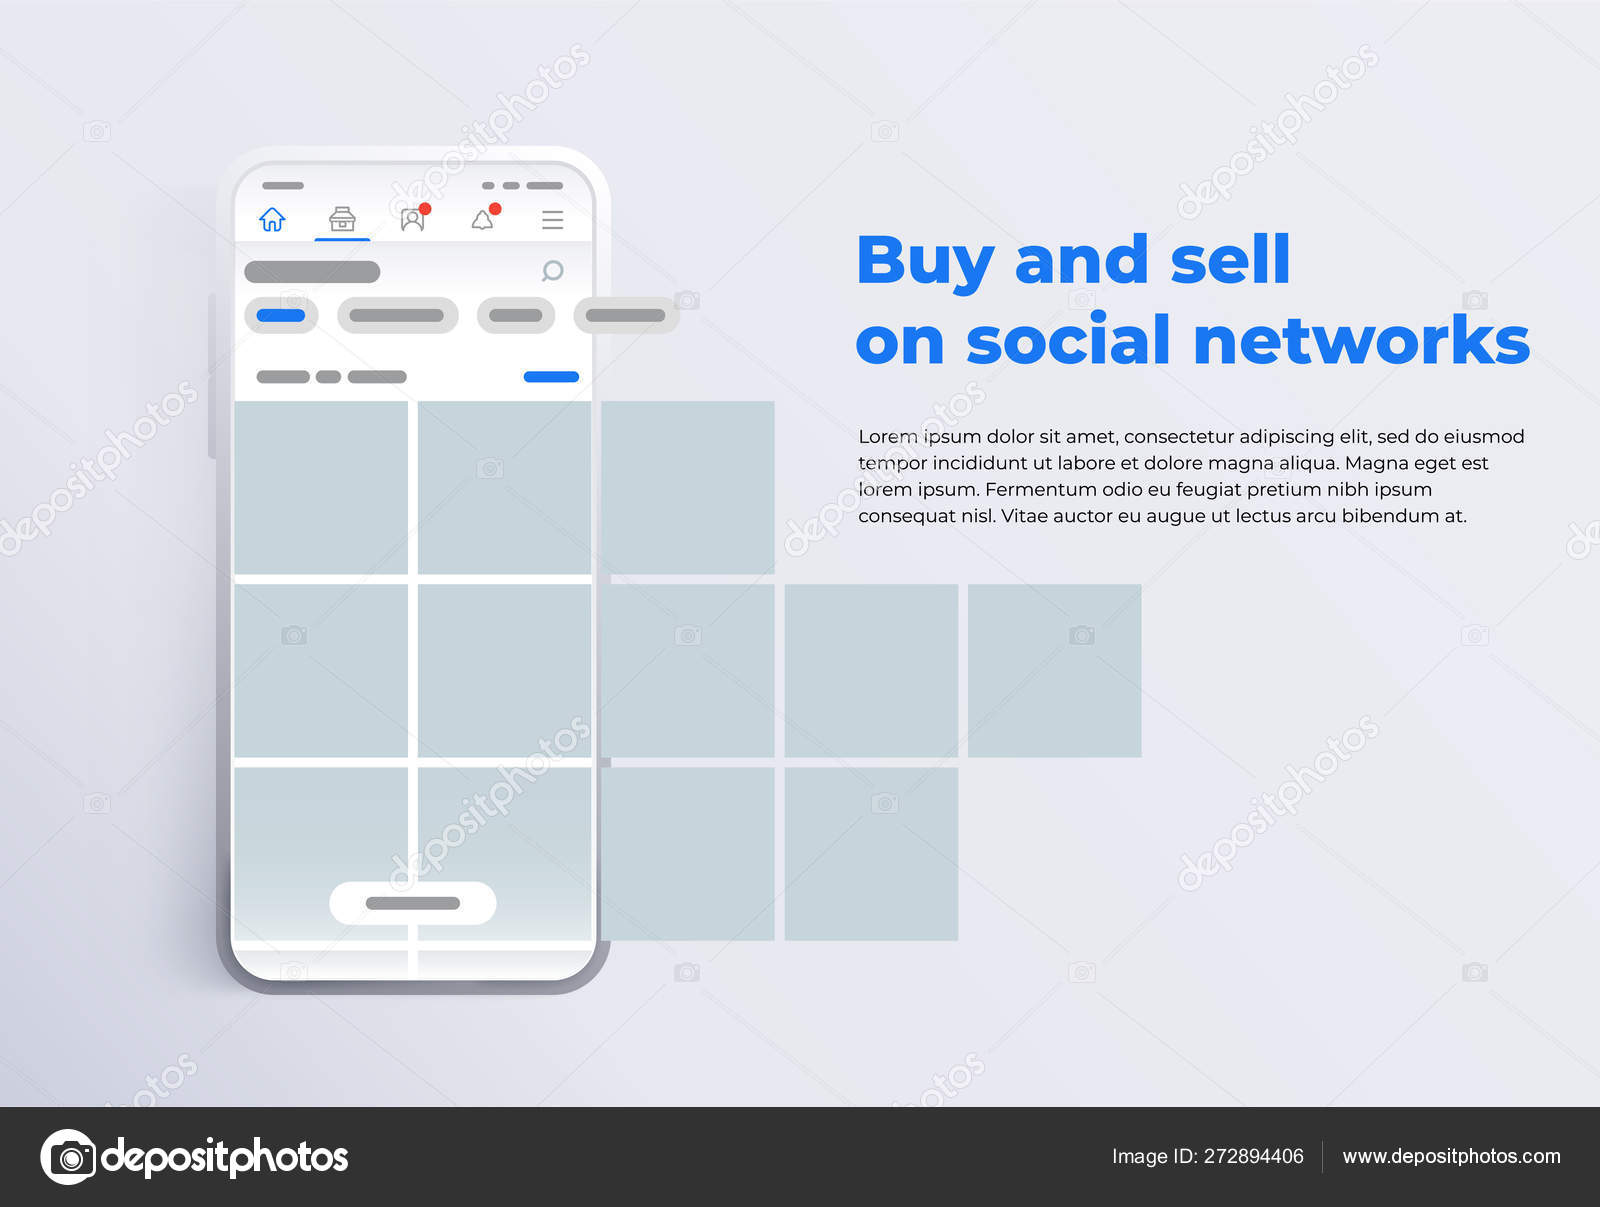 News feed in a social network in the form of a grid